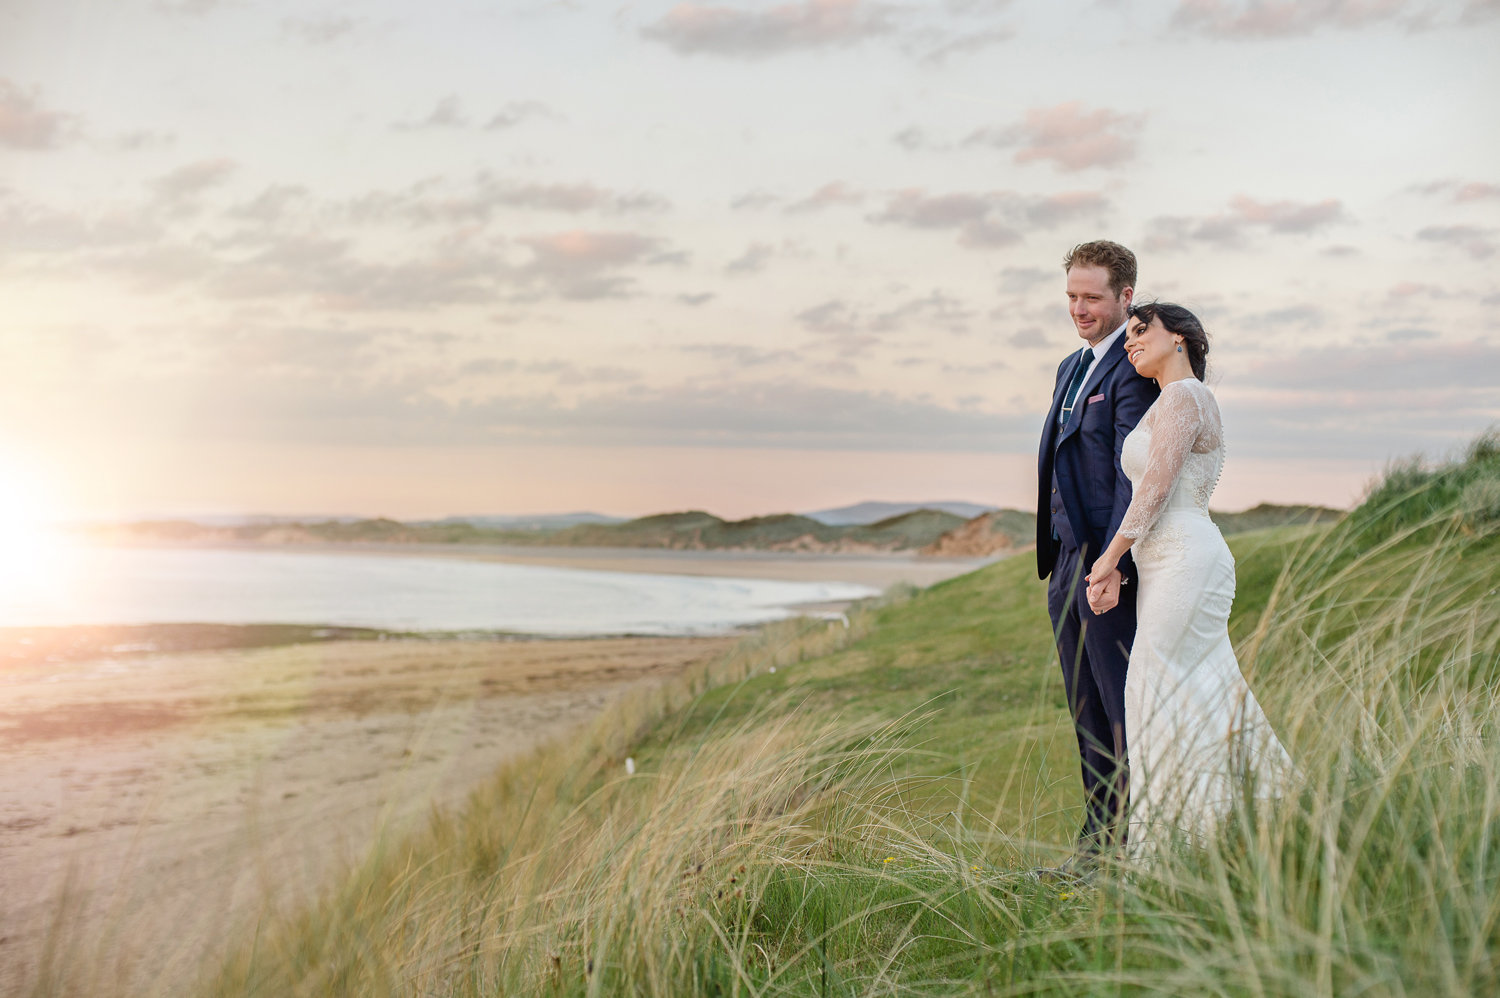 Wedding Planner,Coastal Weddings Ireland,Luxury Weddings, Trump Golf at Doonbeg,Wild Atlantic Way